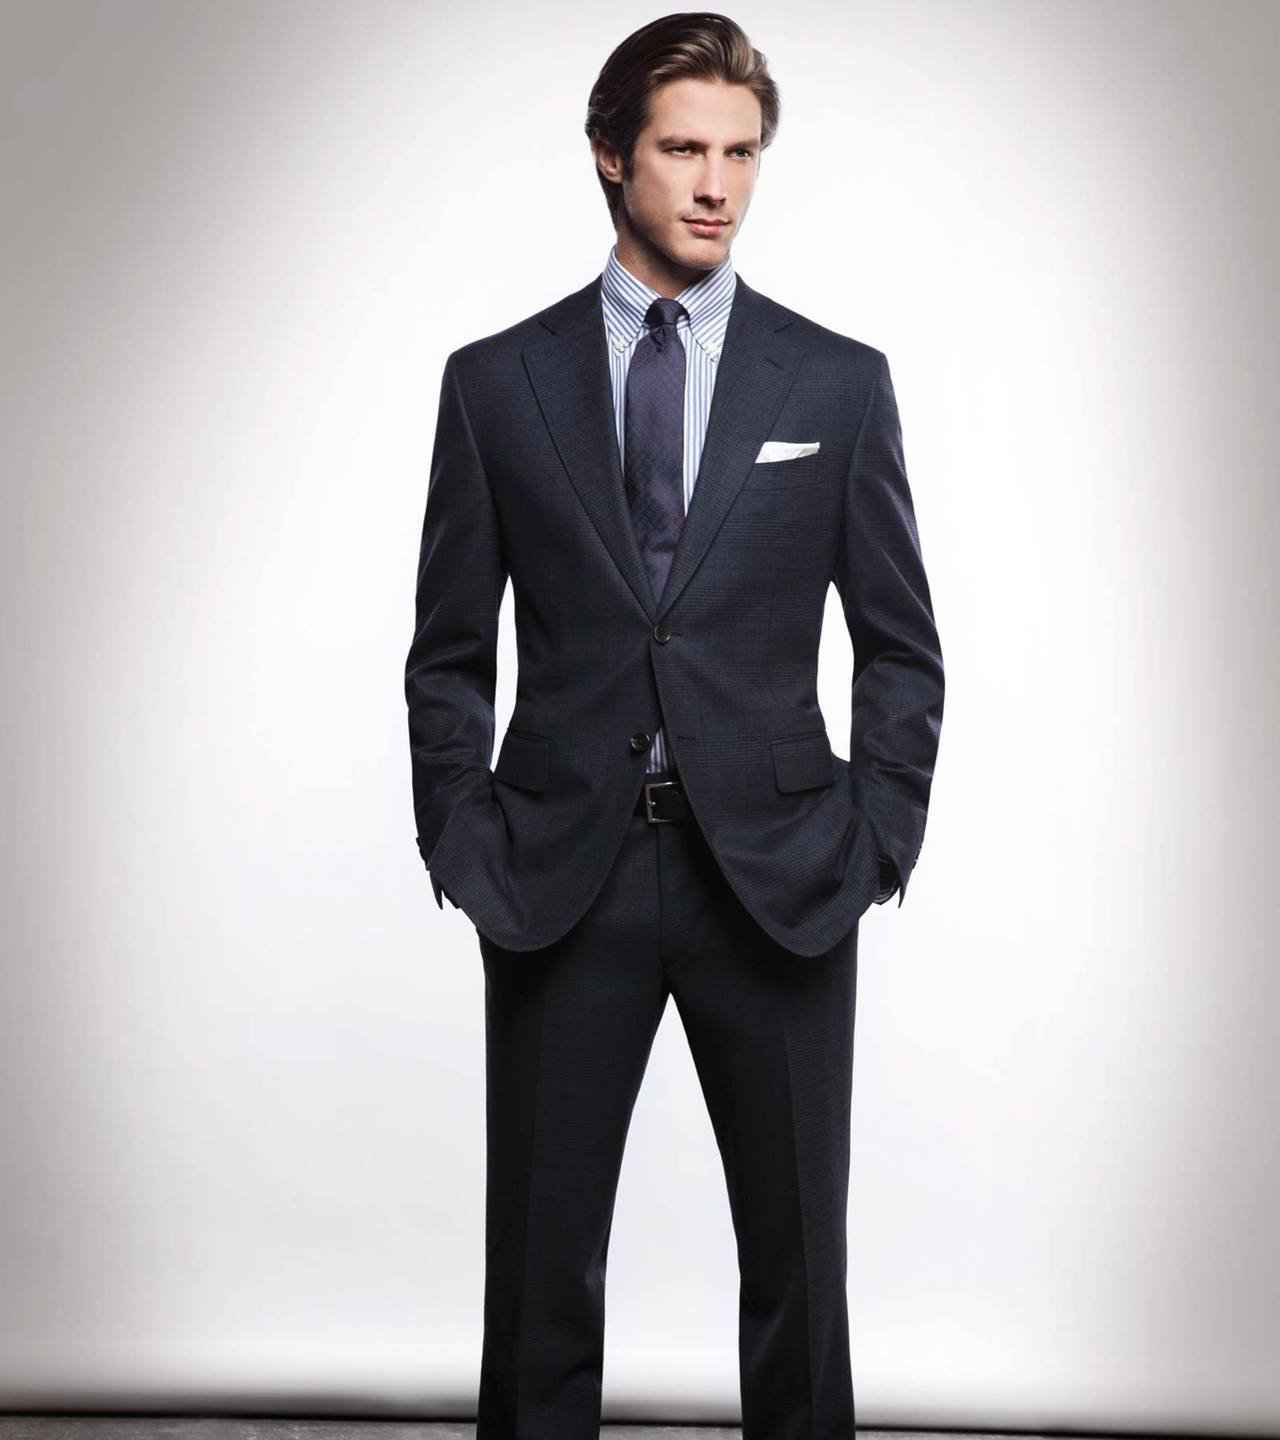 How to wear a suit 23